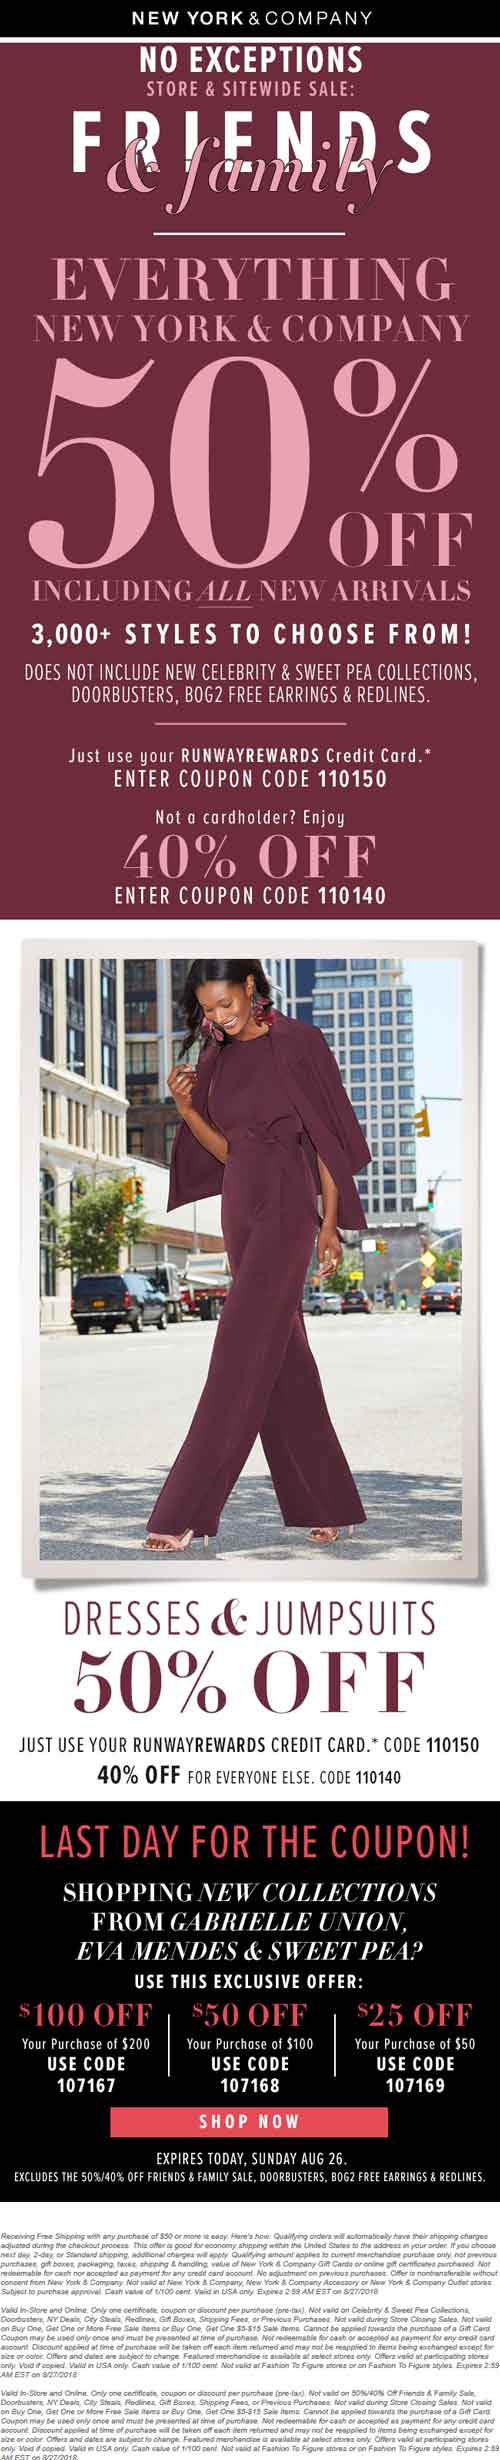 New York & Company Coupon November 2019 40% off store brand today at New York & Company, or online via promo code 110140